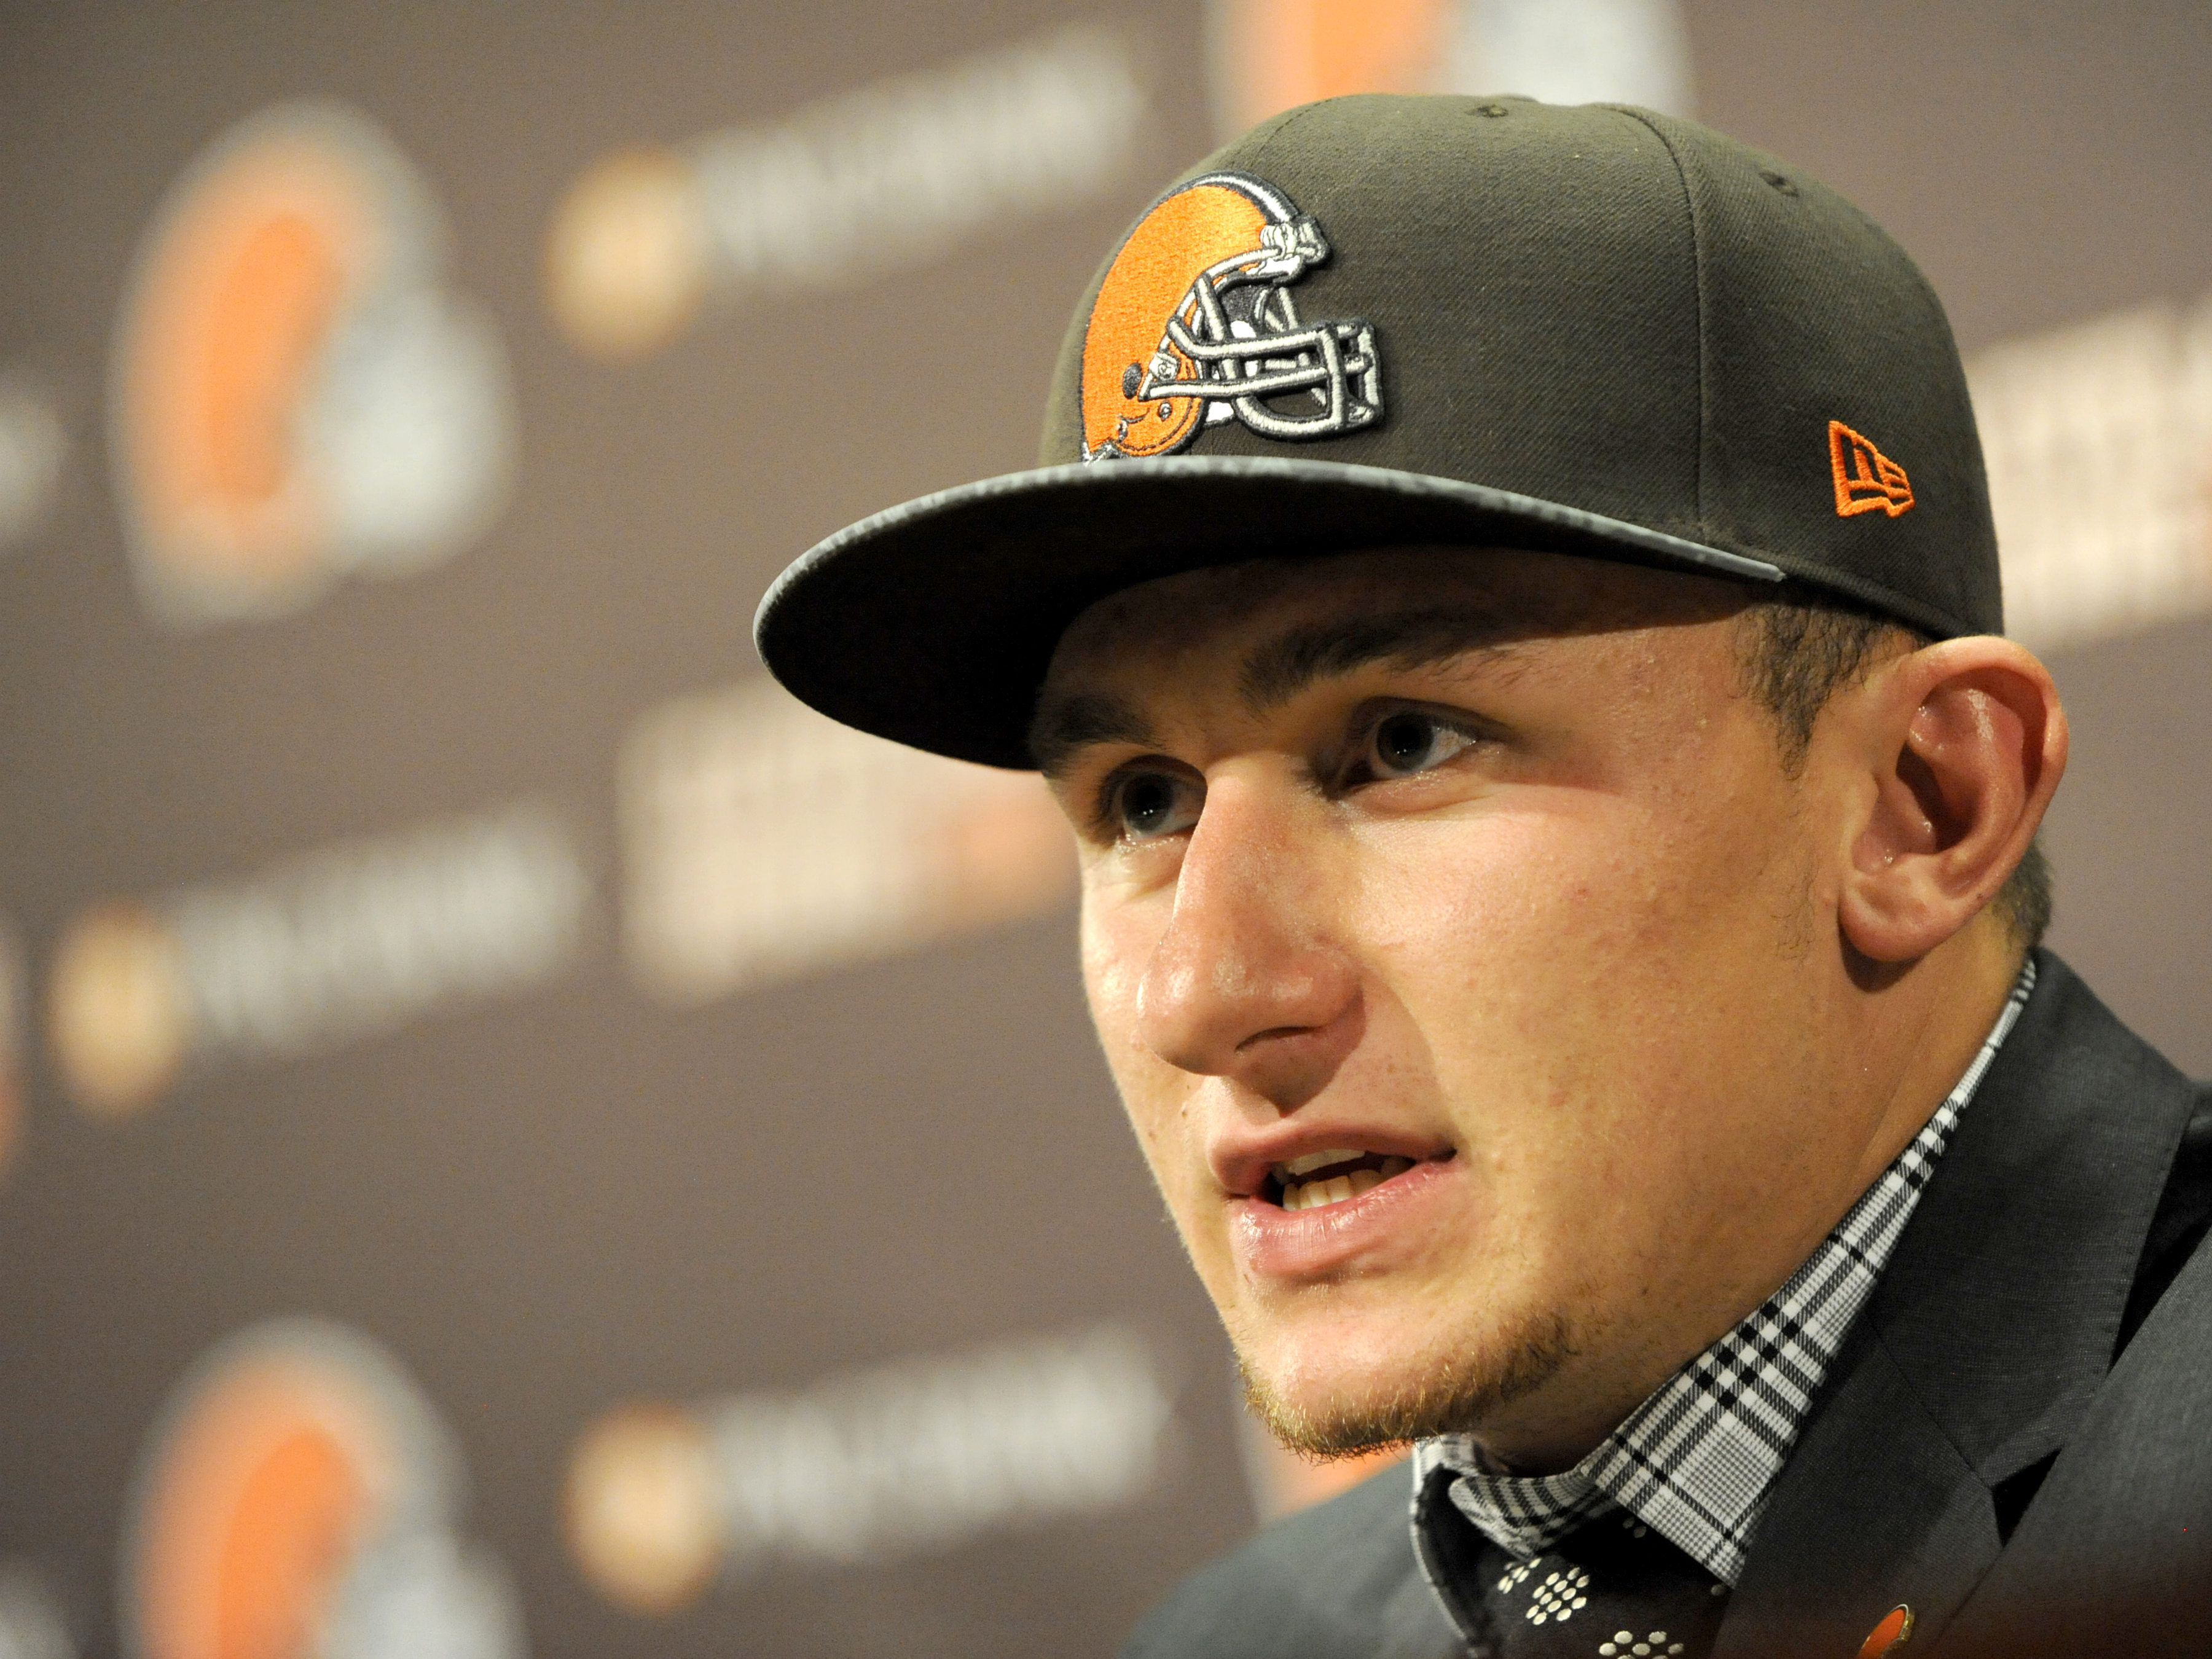 Cleveland Browns first-round pick Johnny Manziel said he's not going to change his ways despite recent comments from team owner Jimmy Haslam.